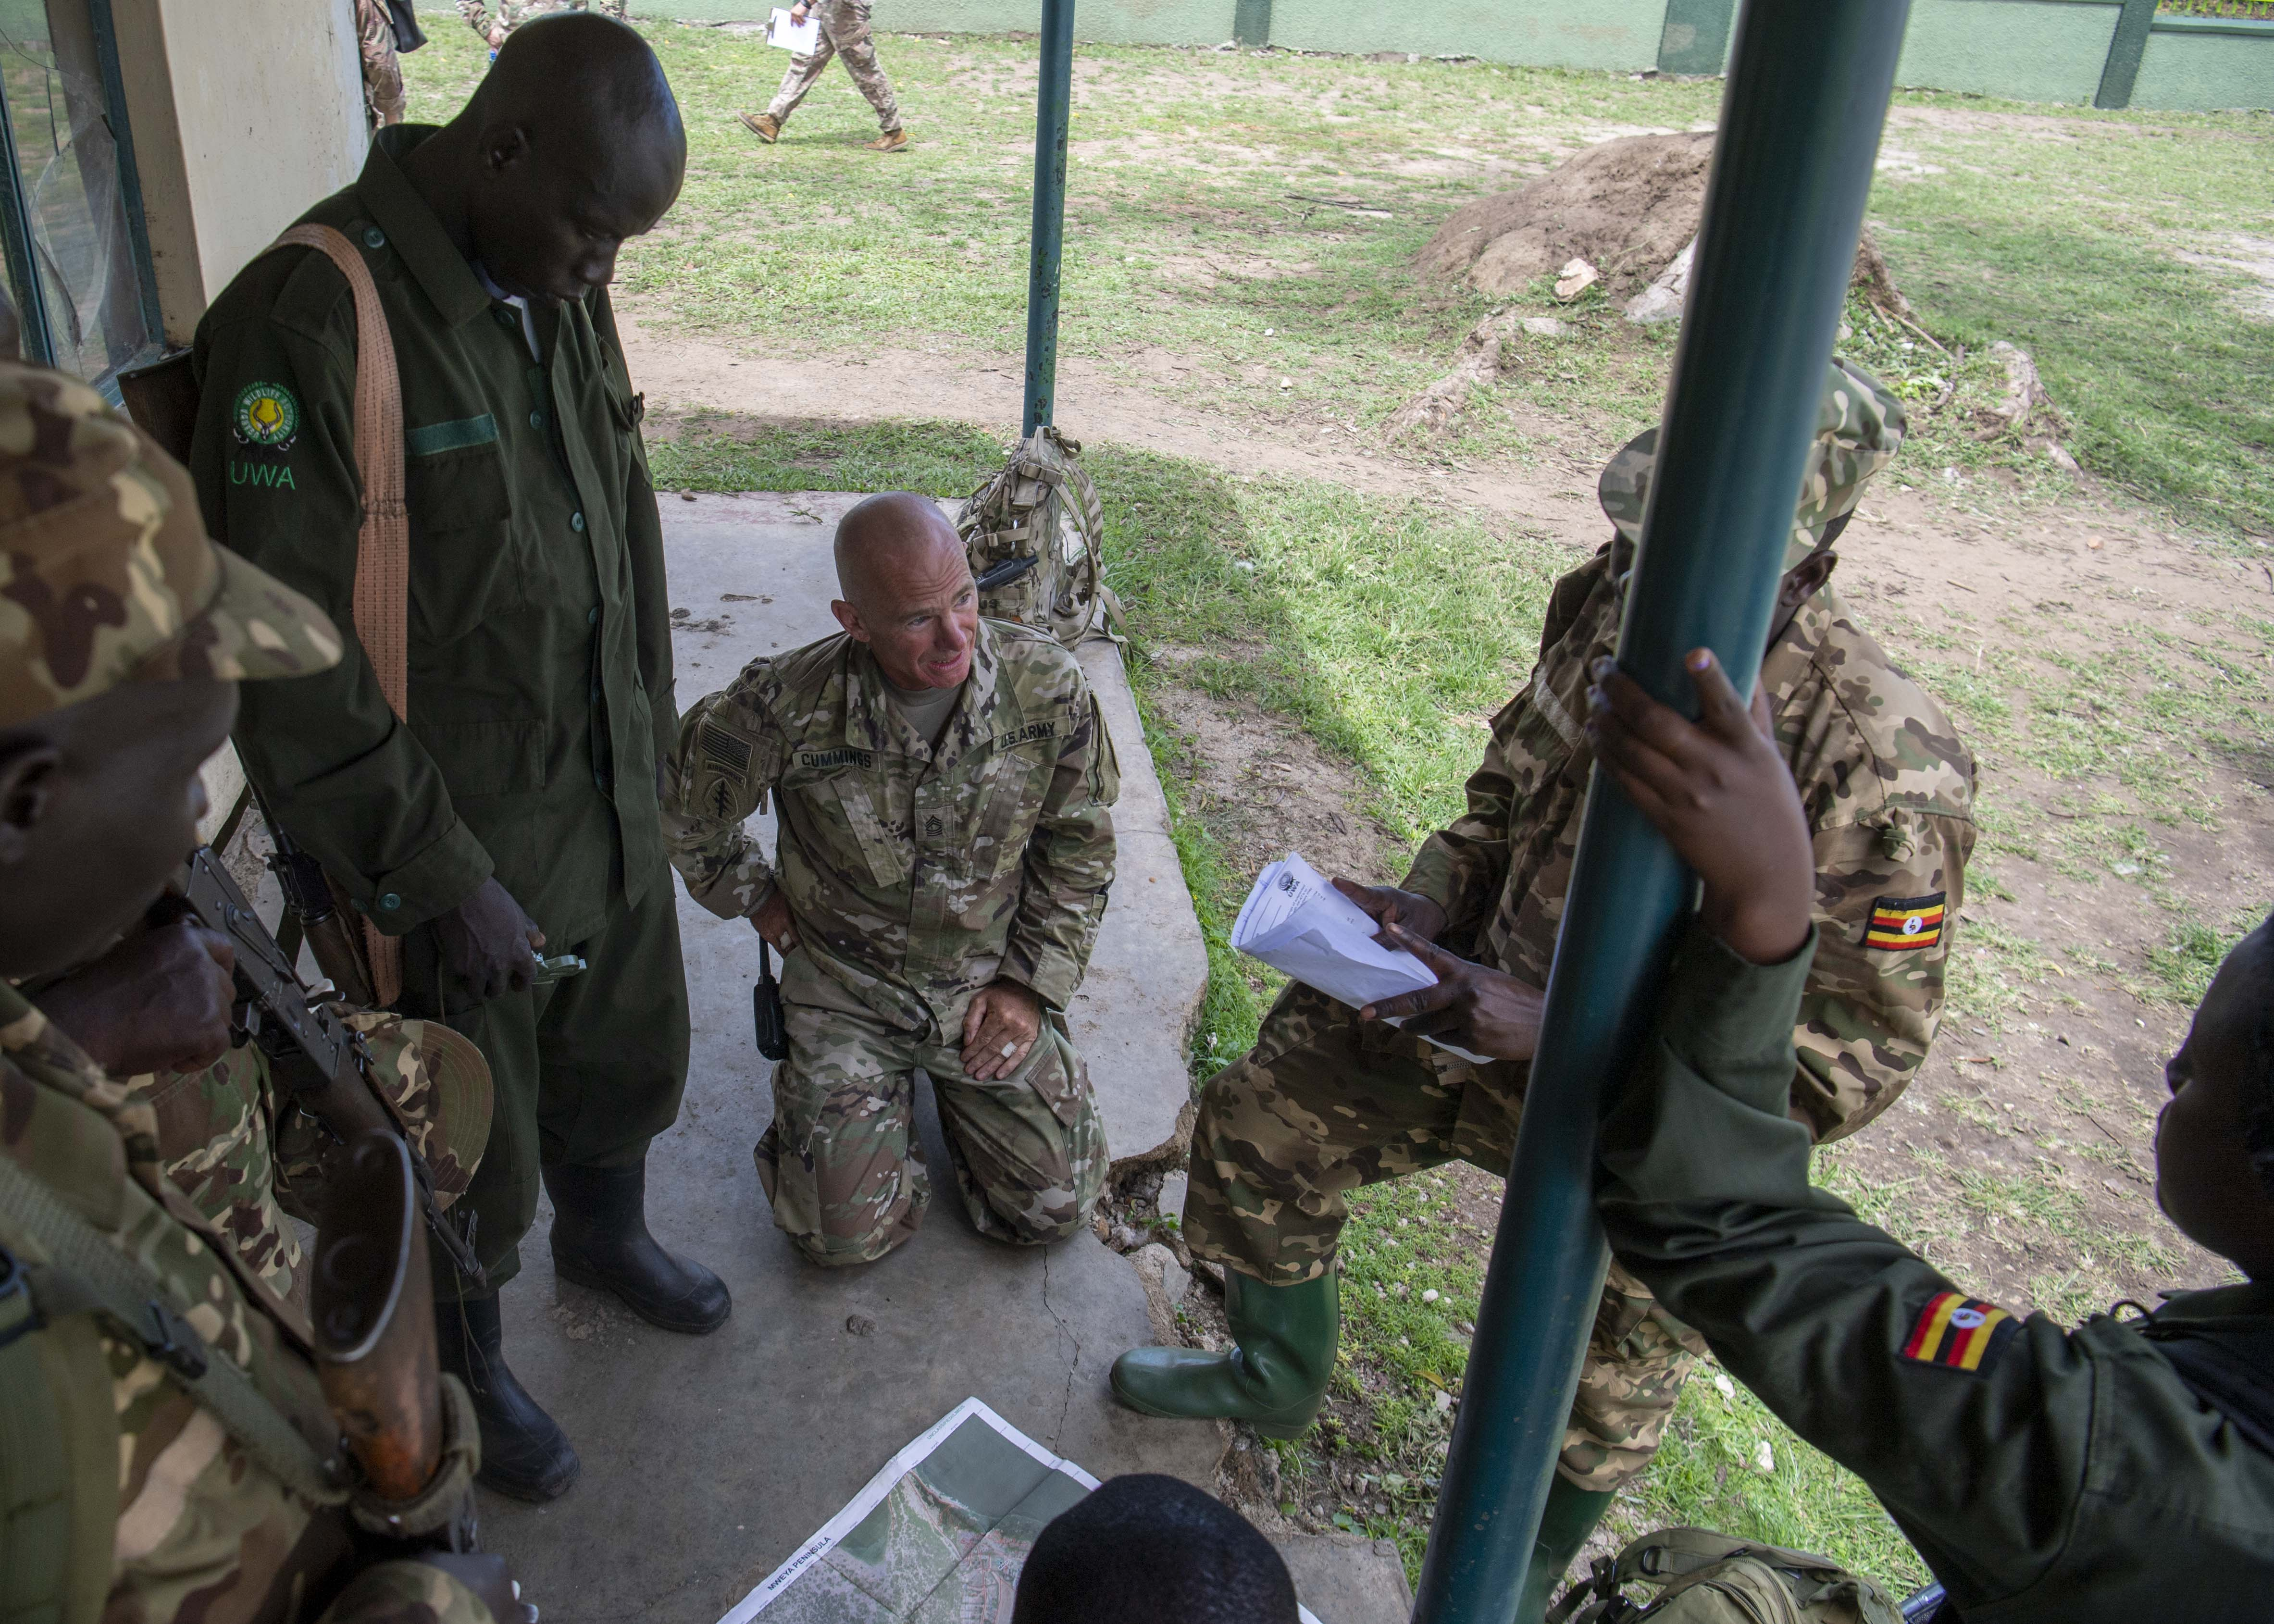 U.S. Army Master Sgt. James Cummings, instructor, 403rd Civil Affairs Battalion assigned to Combined Joint Task Force-Horn of Africa writes a team evaluation during a Counter Illicit Trafficking Junior Leadership Course examination at Queen Elizabeth Park, Uganda, Oct. 10, 2019. Cummings was one of six instructors who taught Uganda Wildlife Authority (UWA) Rangers how to conduct land navigation, conduct small unit tactics, respond to wildlife crimes, ethics and medically treat a casualty. (U.S. Air Force photo by Staff Sgt. J.D. Strong II)